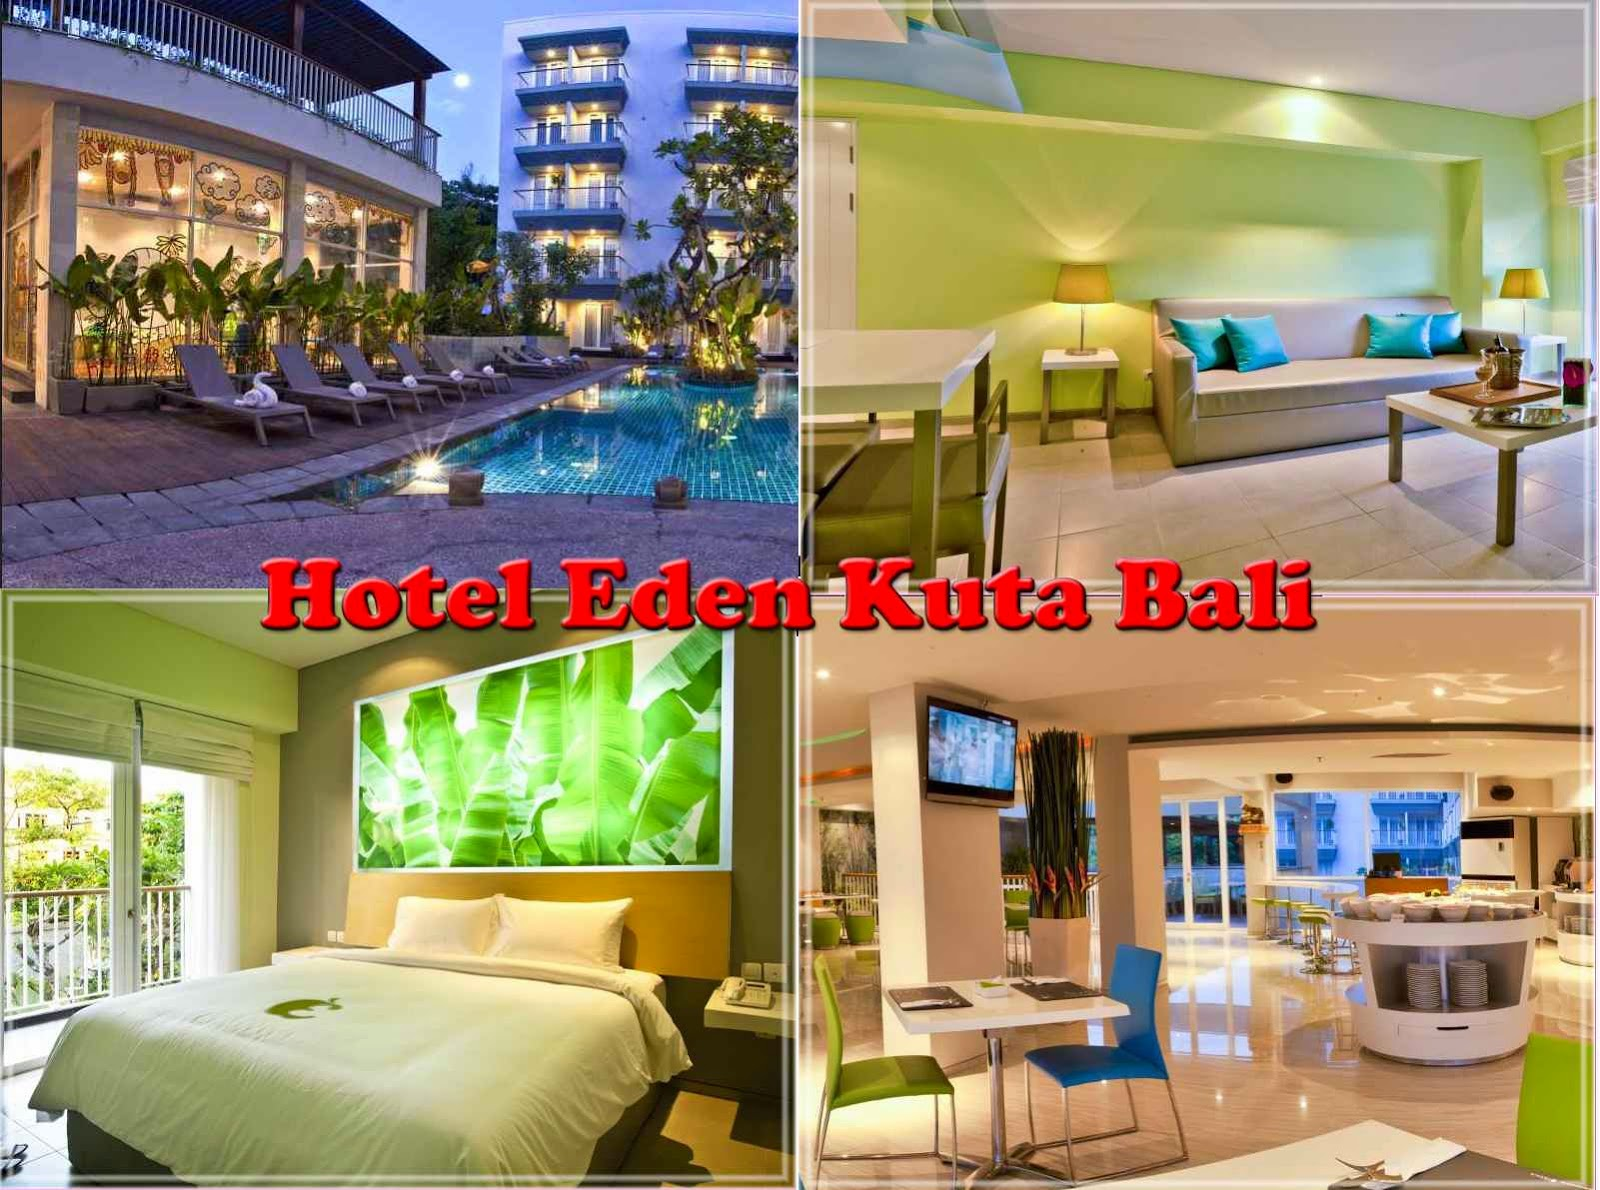 hotel eden kuta bali daftar hotel di kuta bali. Black Bedroom Furniture Sets. Home Design Ideas